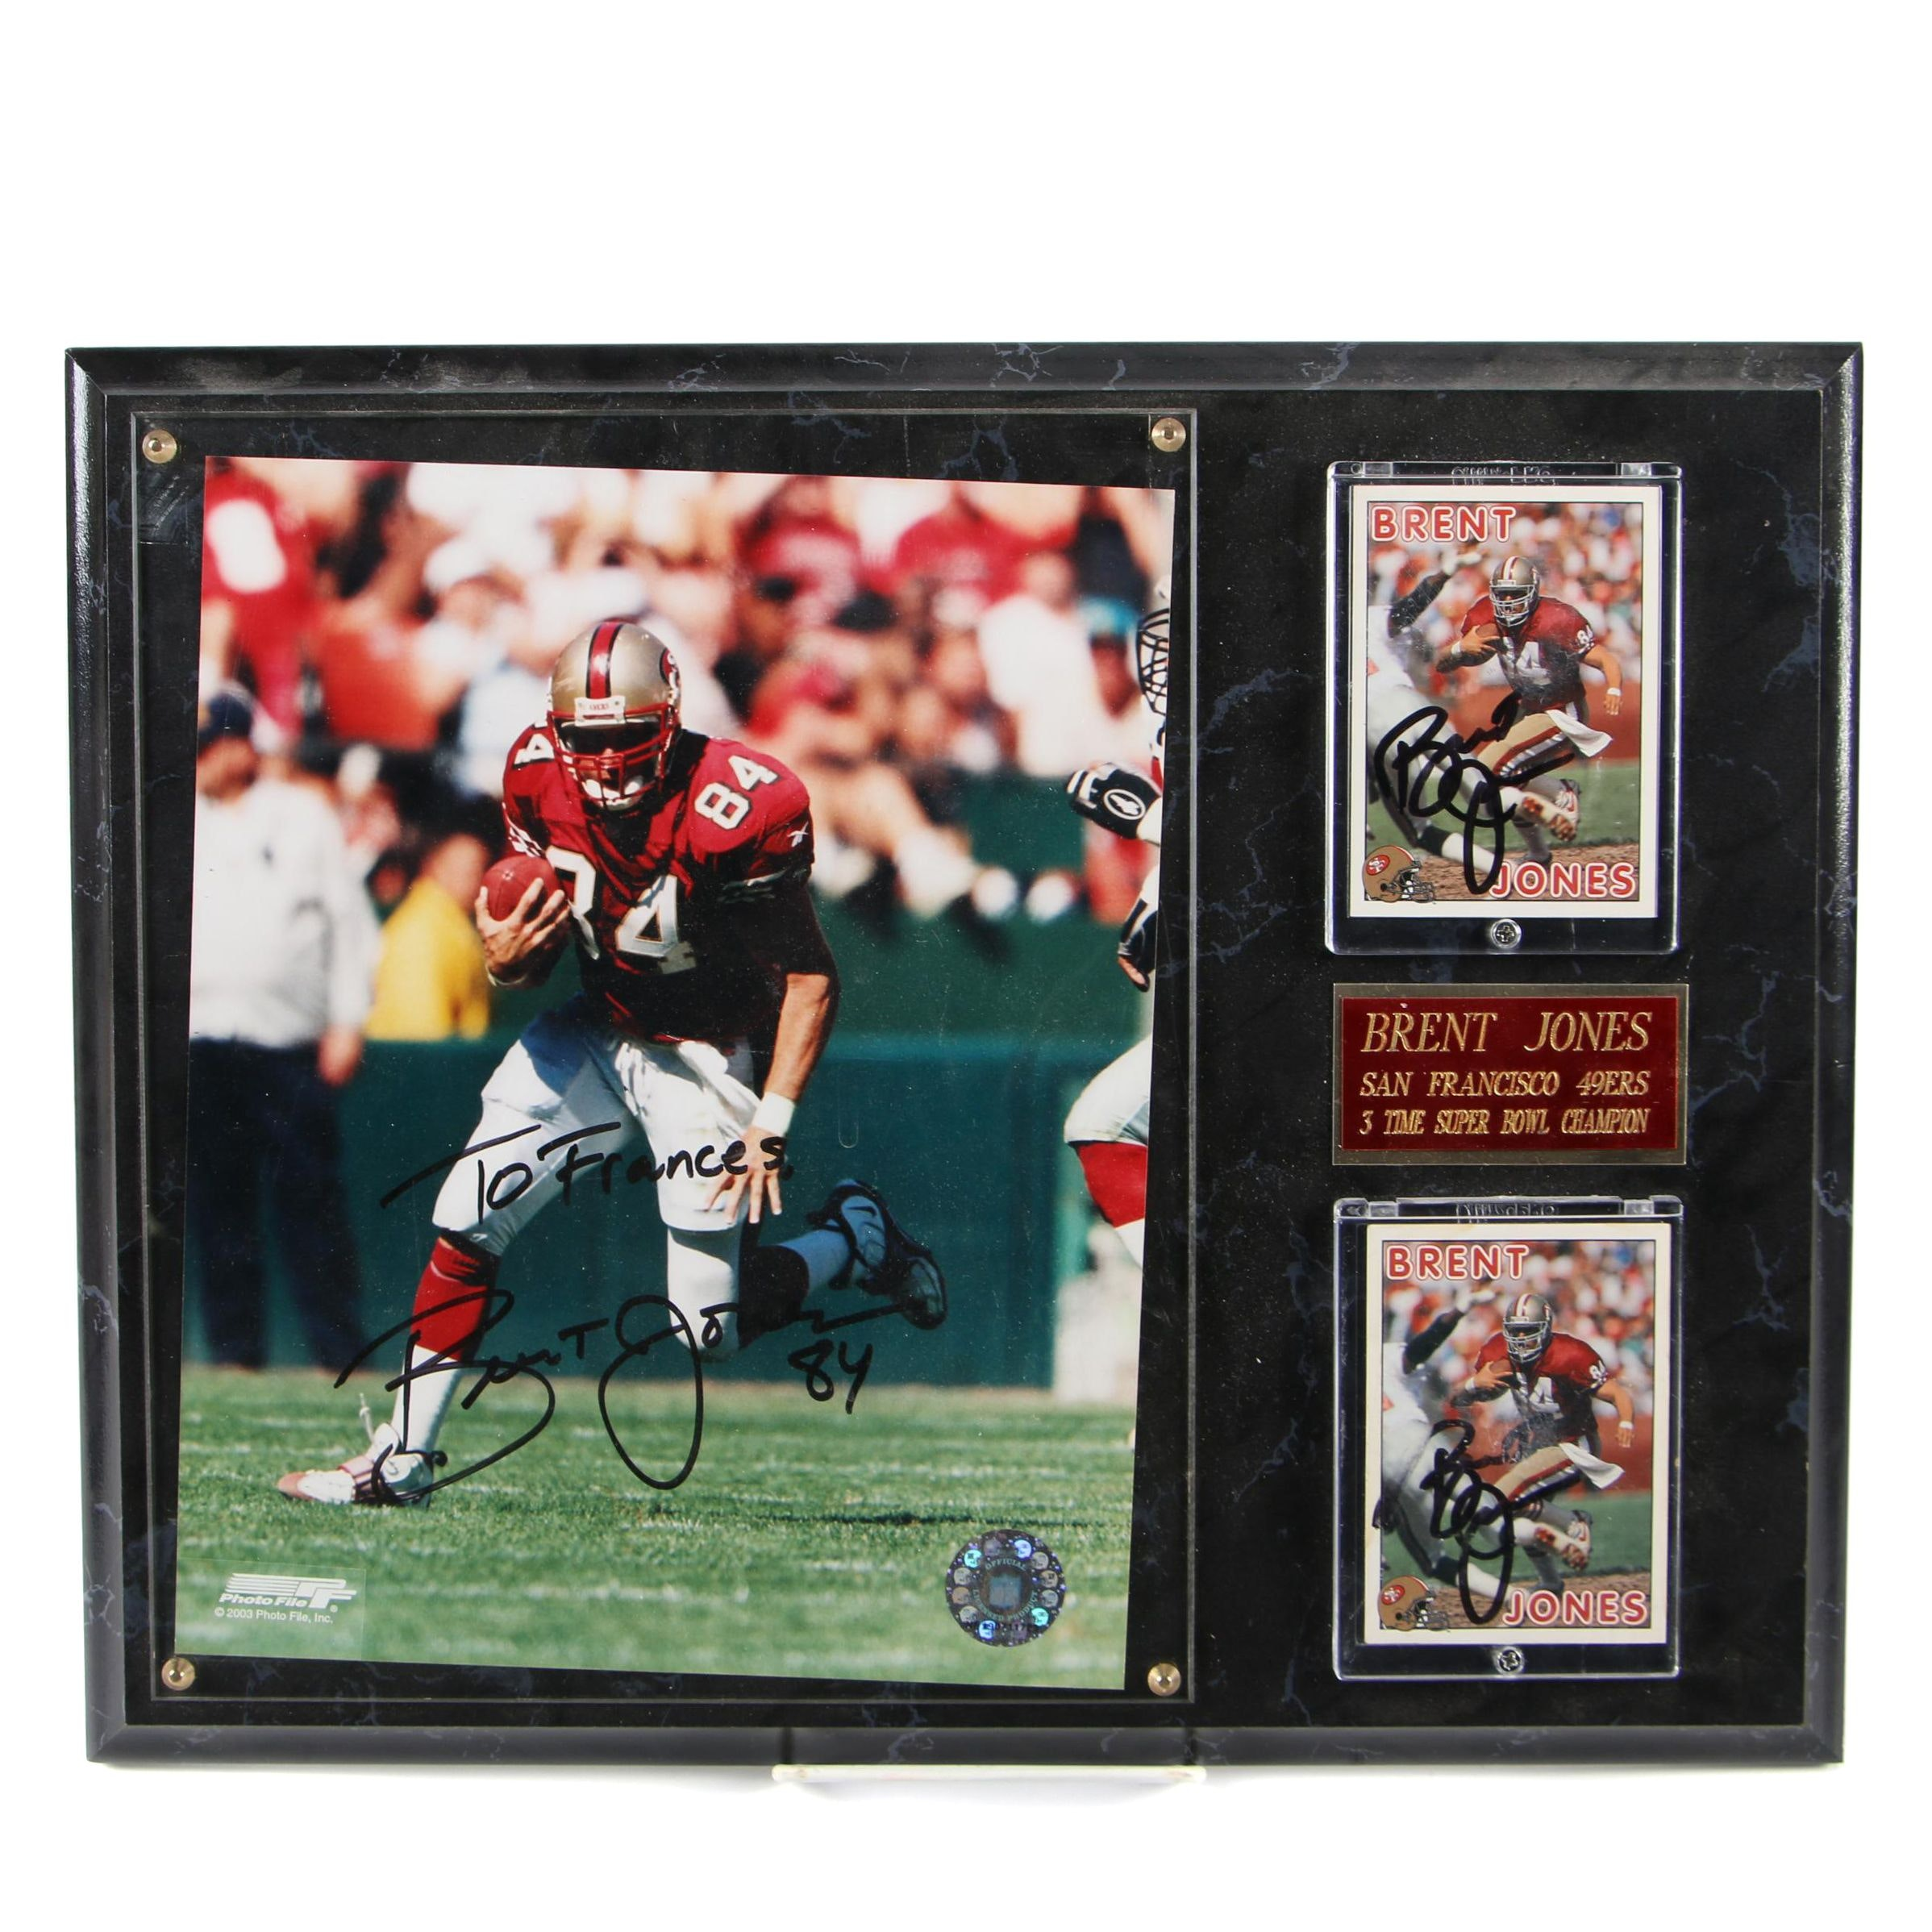 Autographed Brent Jones Photo and Football Cards